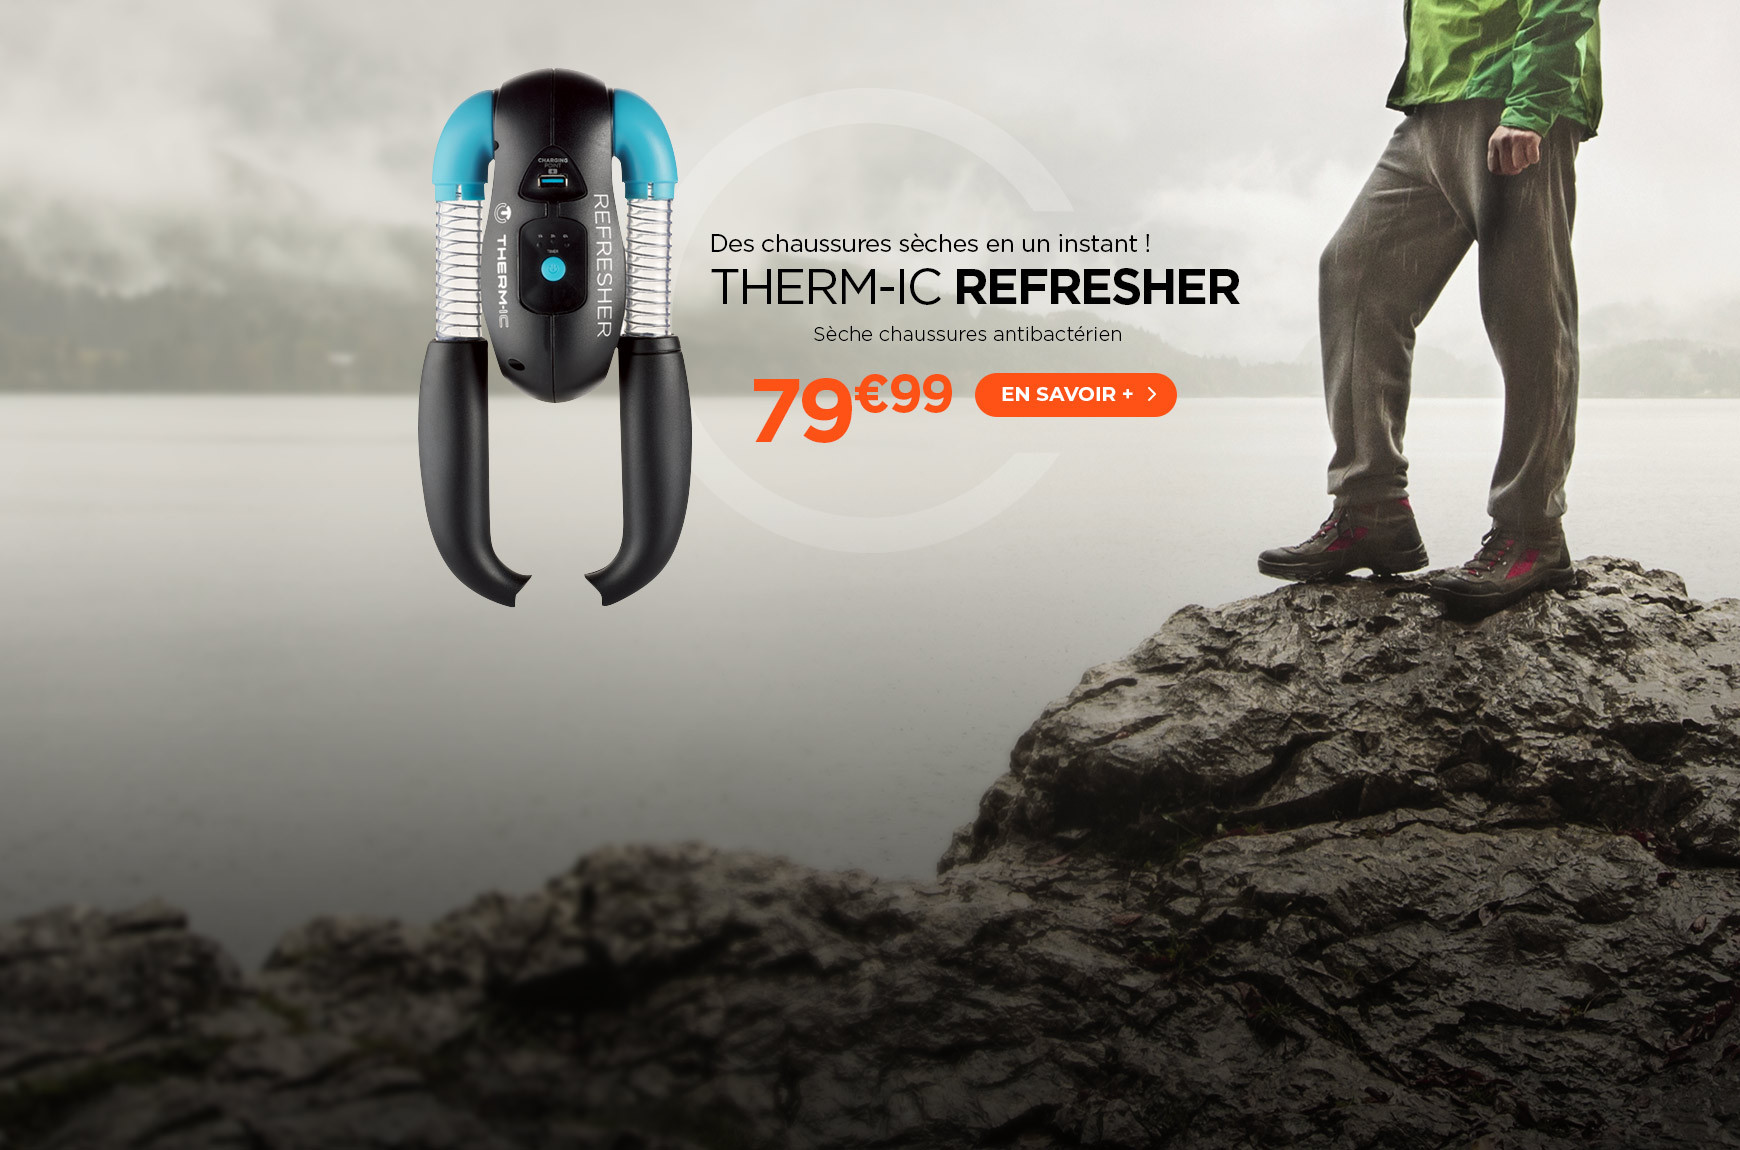 Sèche chaussures antibactérien Therm-ic Refresher